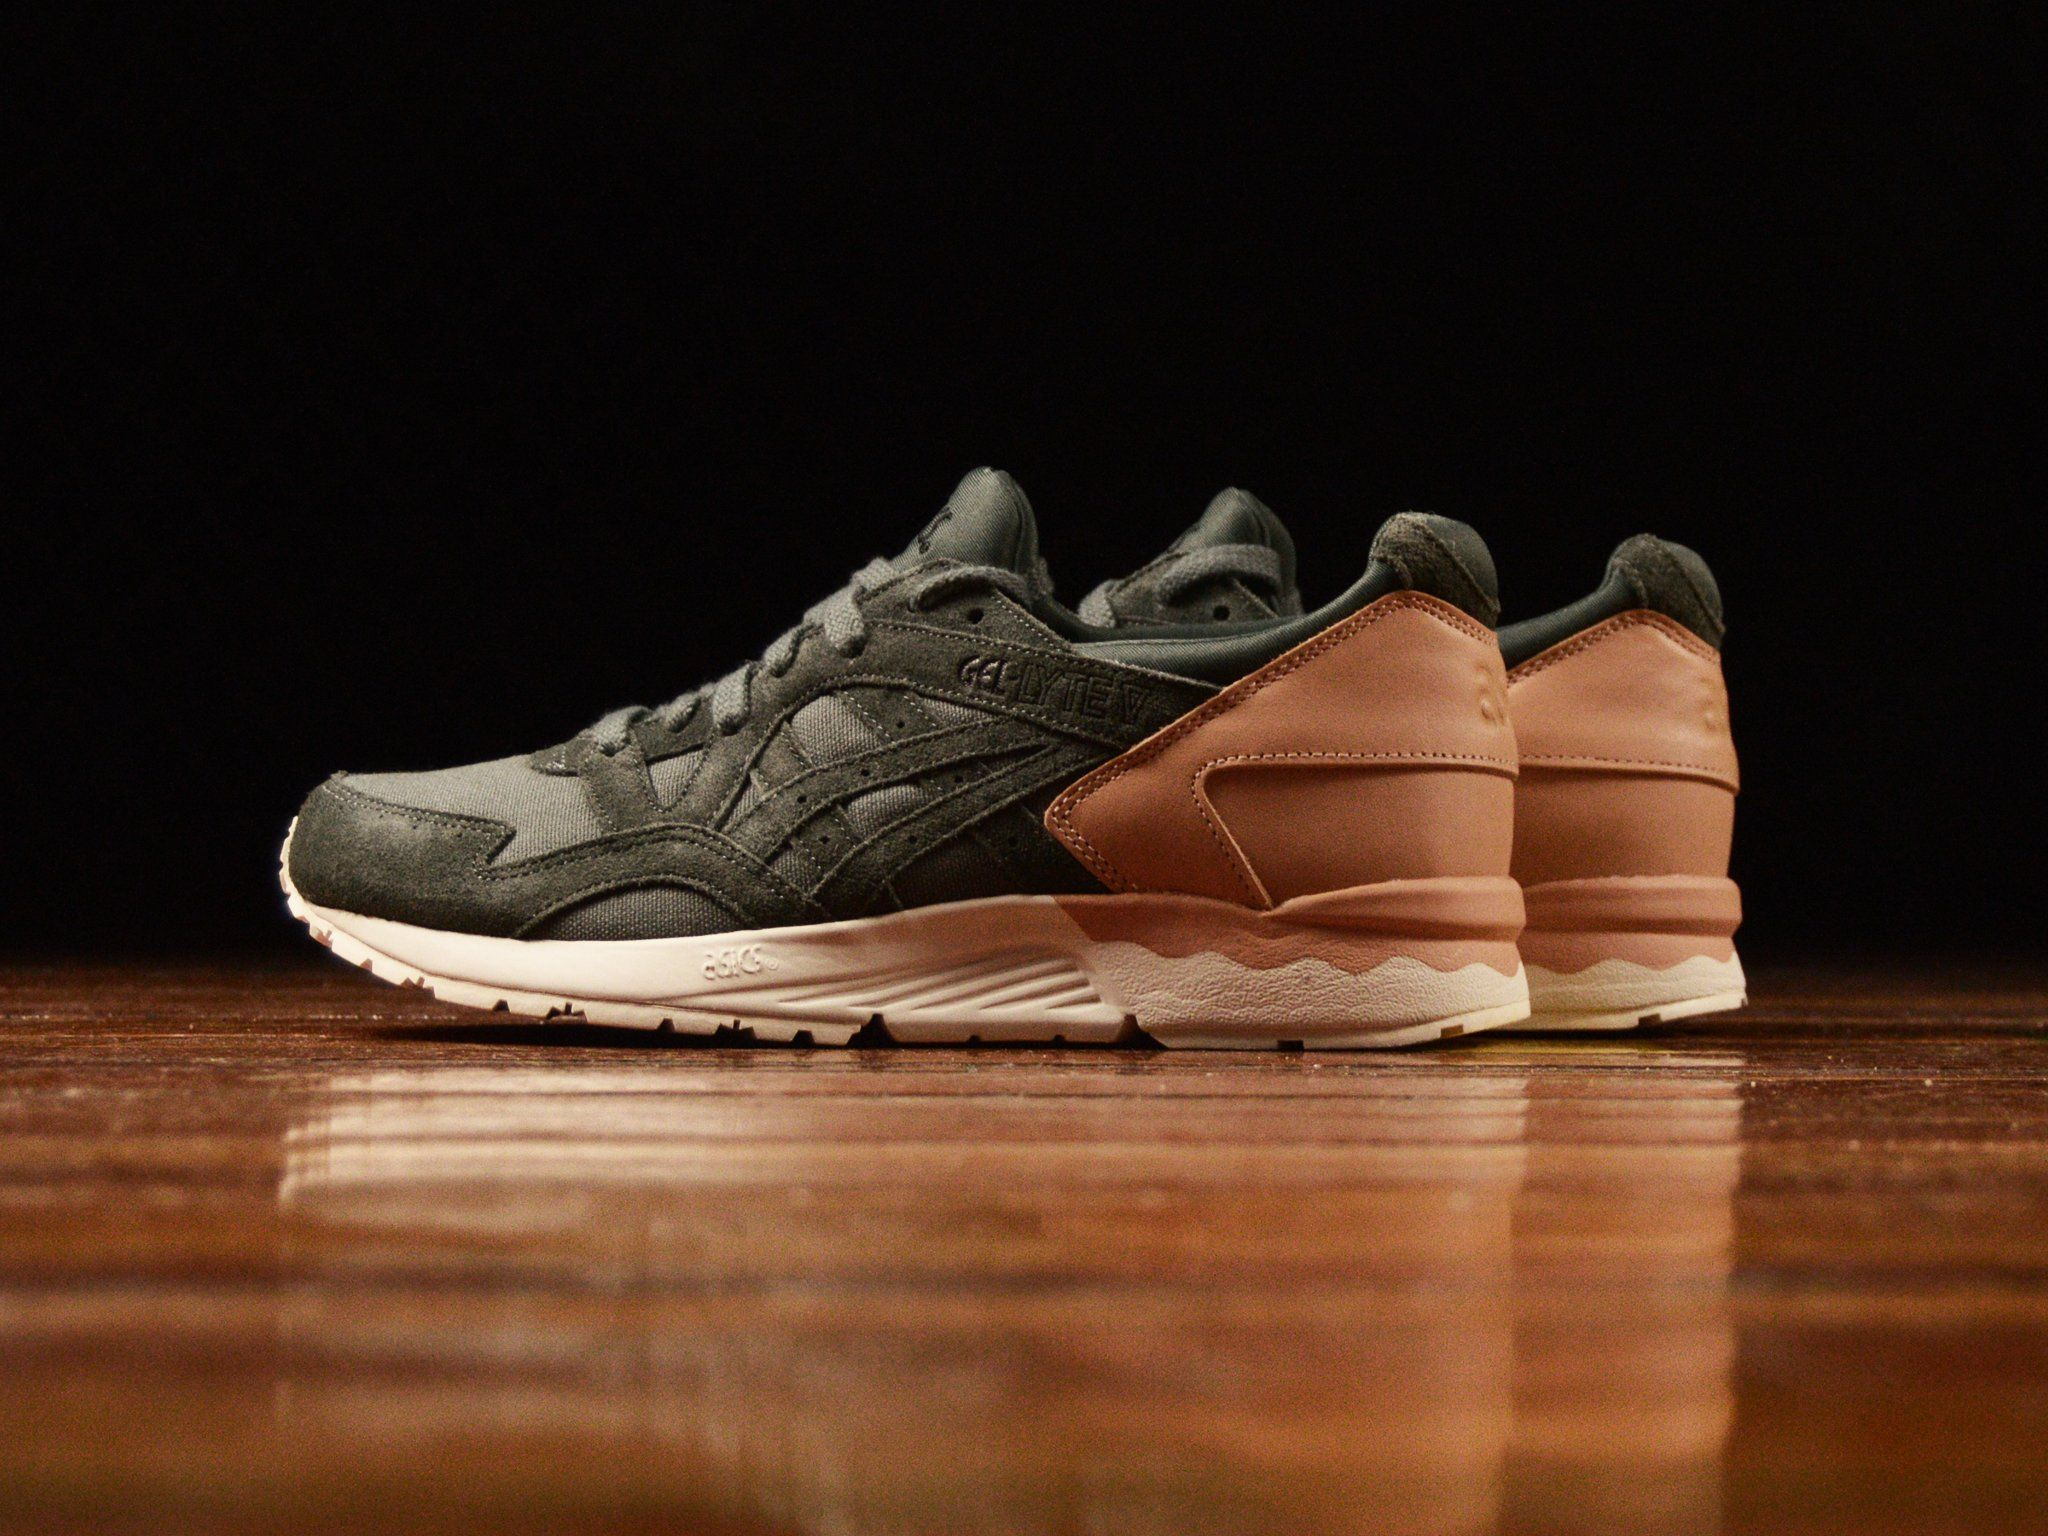 huge selection of b9eef 2be83 Men's Asics Gel-Lyte V 'Dark Forest' [H835L-8282] | Asics ...